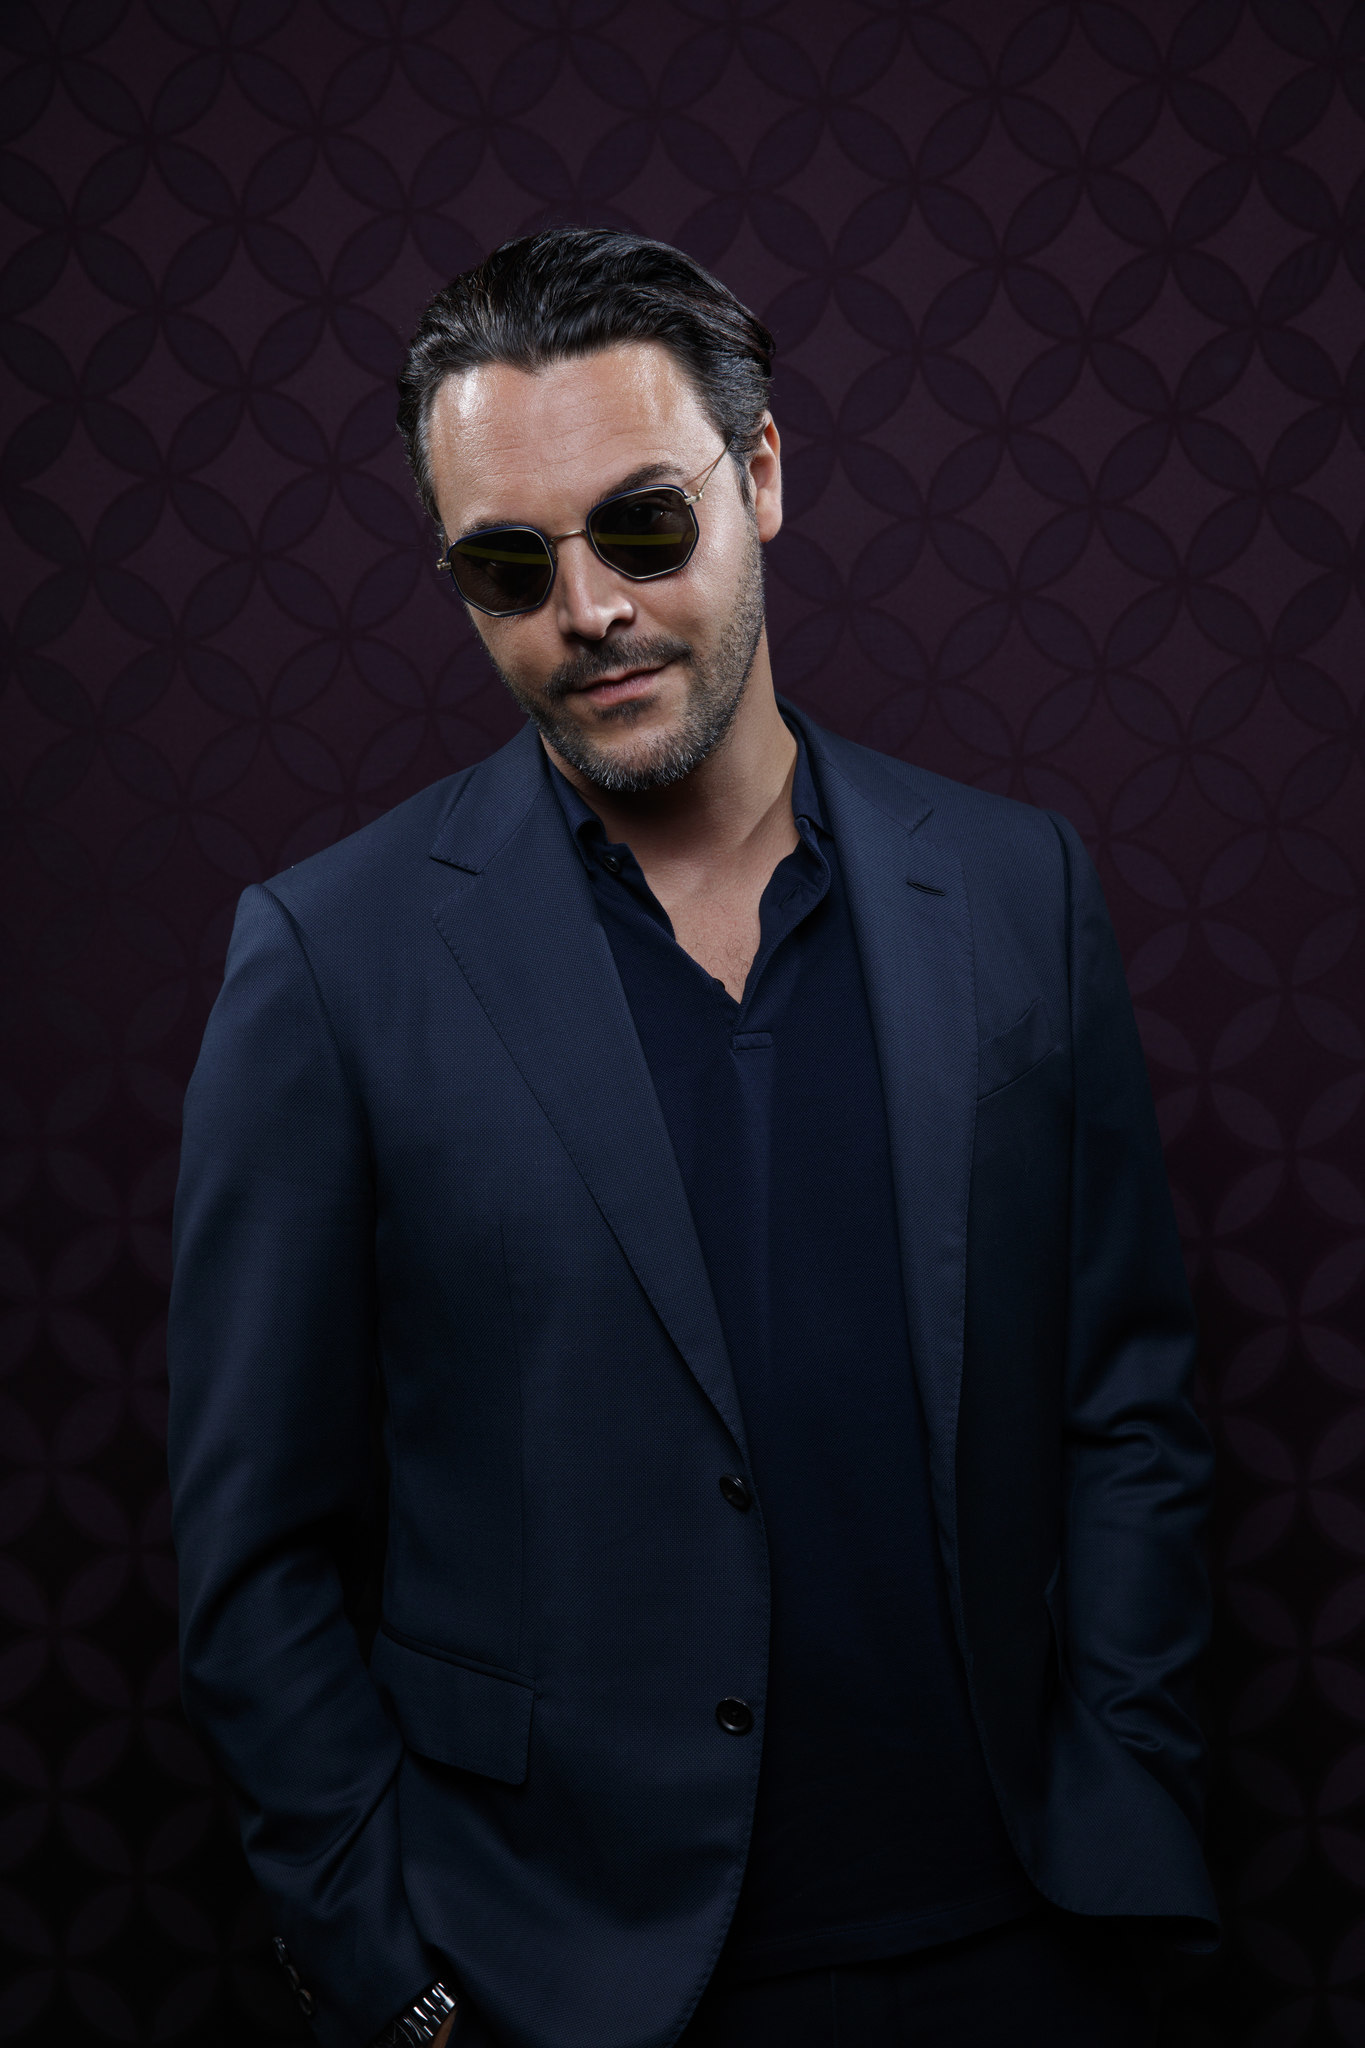 """SAN DIEGO, CALIF. -- JULY 19, 2018-- Jack Huston from the television series """"Mr. Mercedes,"""" photogr"""